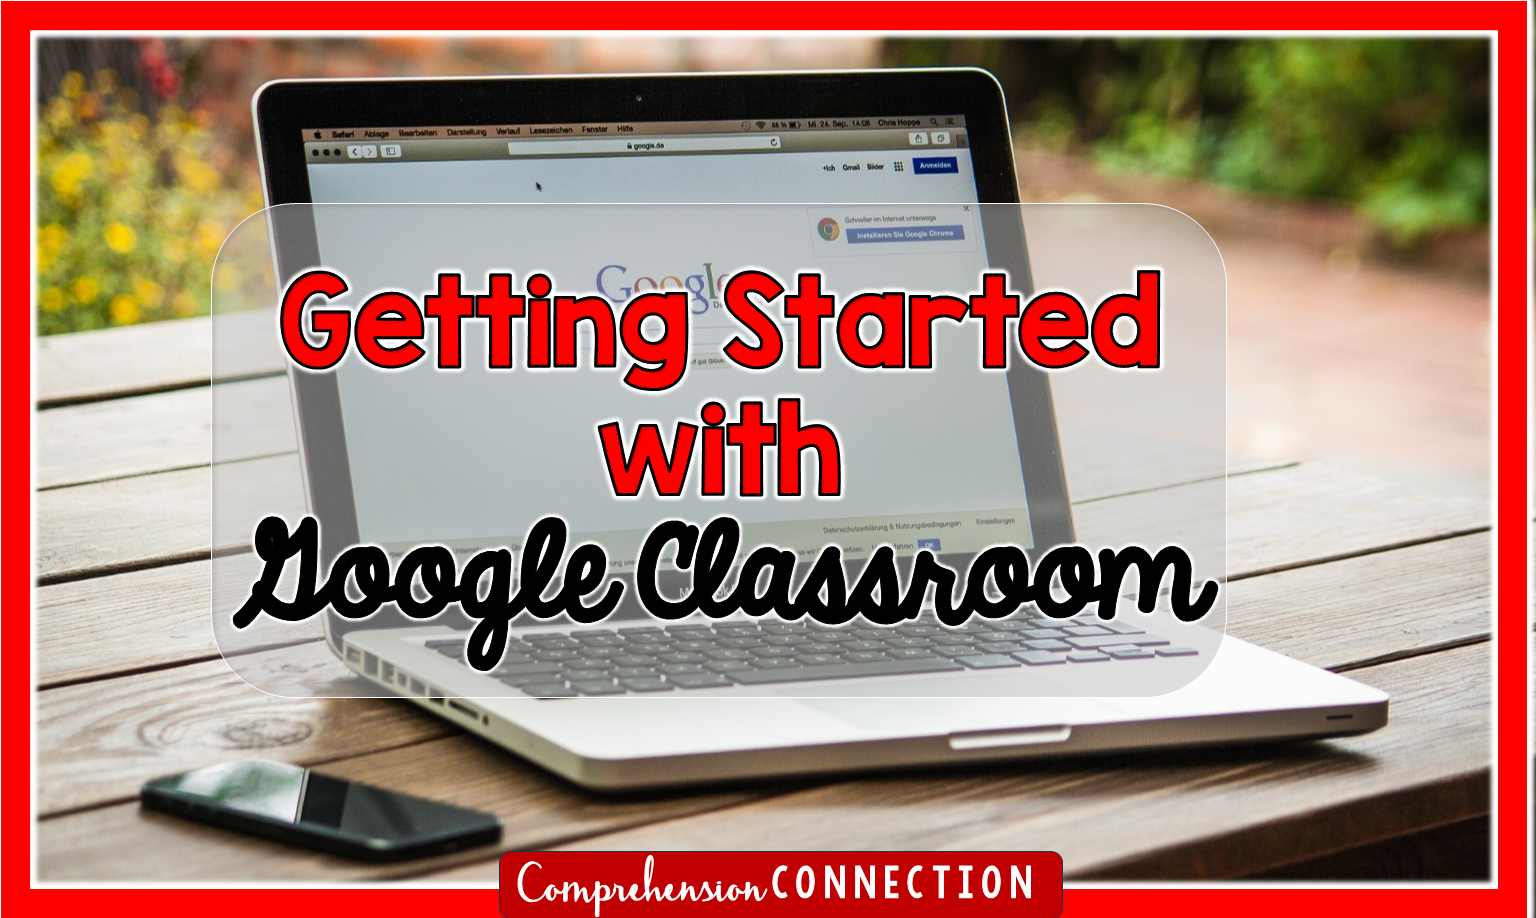 Does your division use Google Apps for Education? If so, check out Google Classroom and check out this post on how I used it in my classroom.